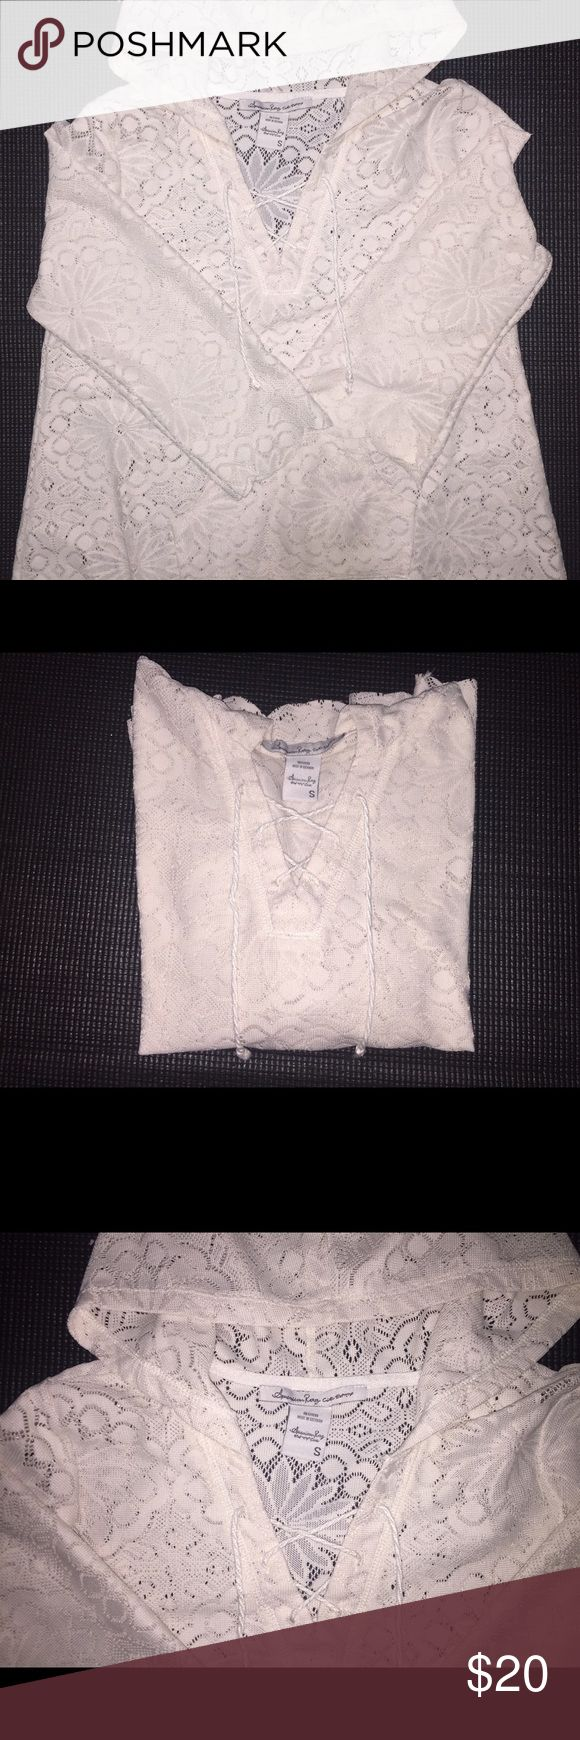 American Rag Lace hoodie Great condition! Worn maybe twice ever. Very cute to later with bralettes! They flare at the end and it's not right fitting which looks great on every body type. I just never wore it as often as I thought. American Rag Sweaters